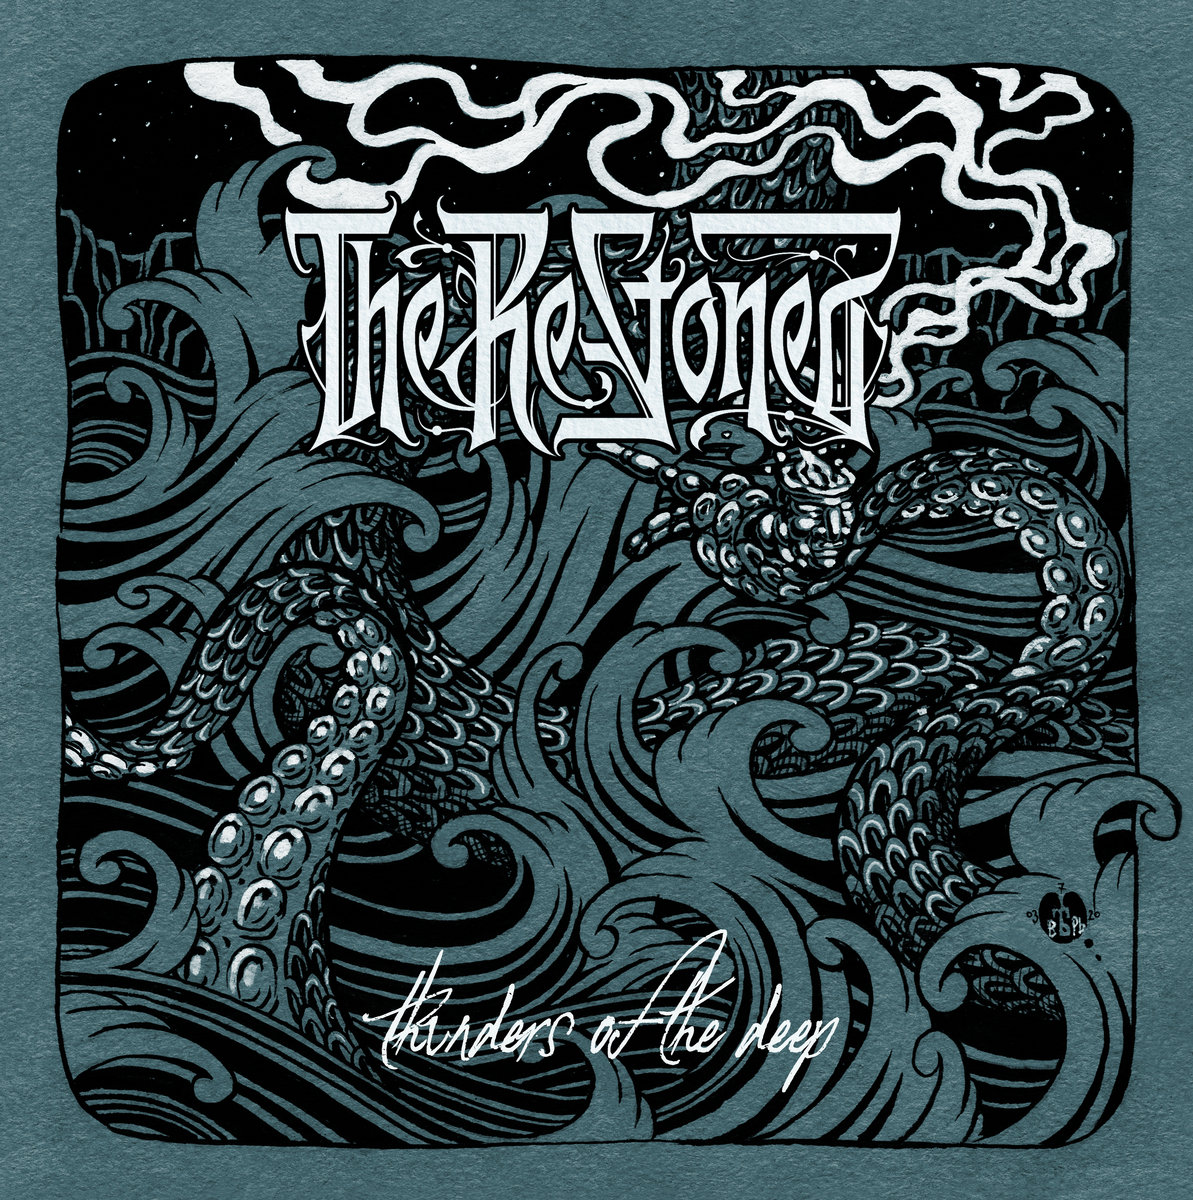 Reseña: THE RE-STONED.- 'Thunders of thedeep'